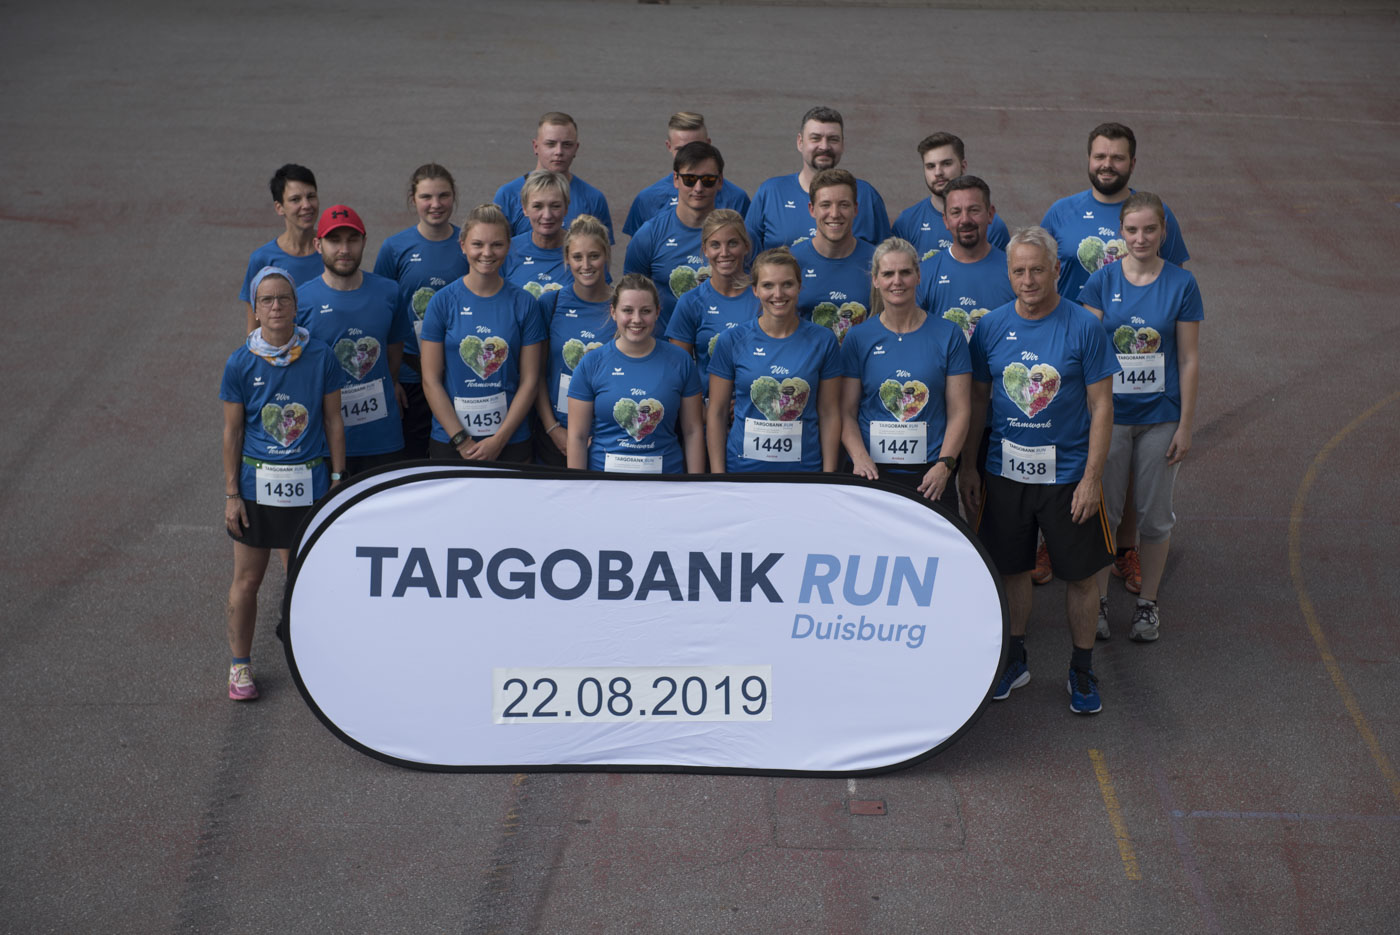 Targobank-Run 2019